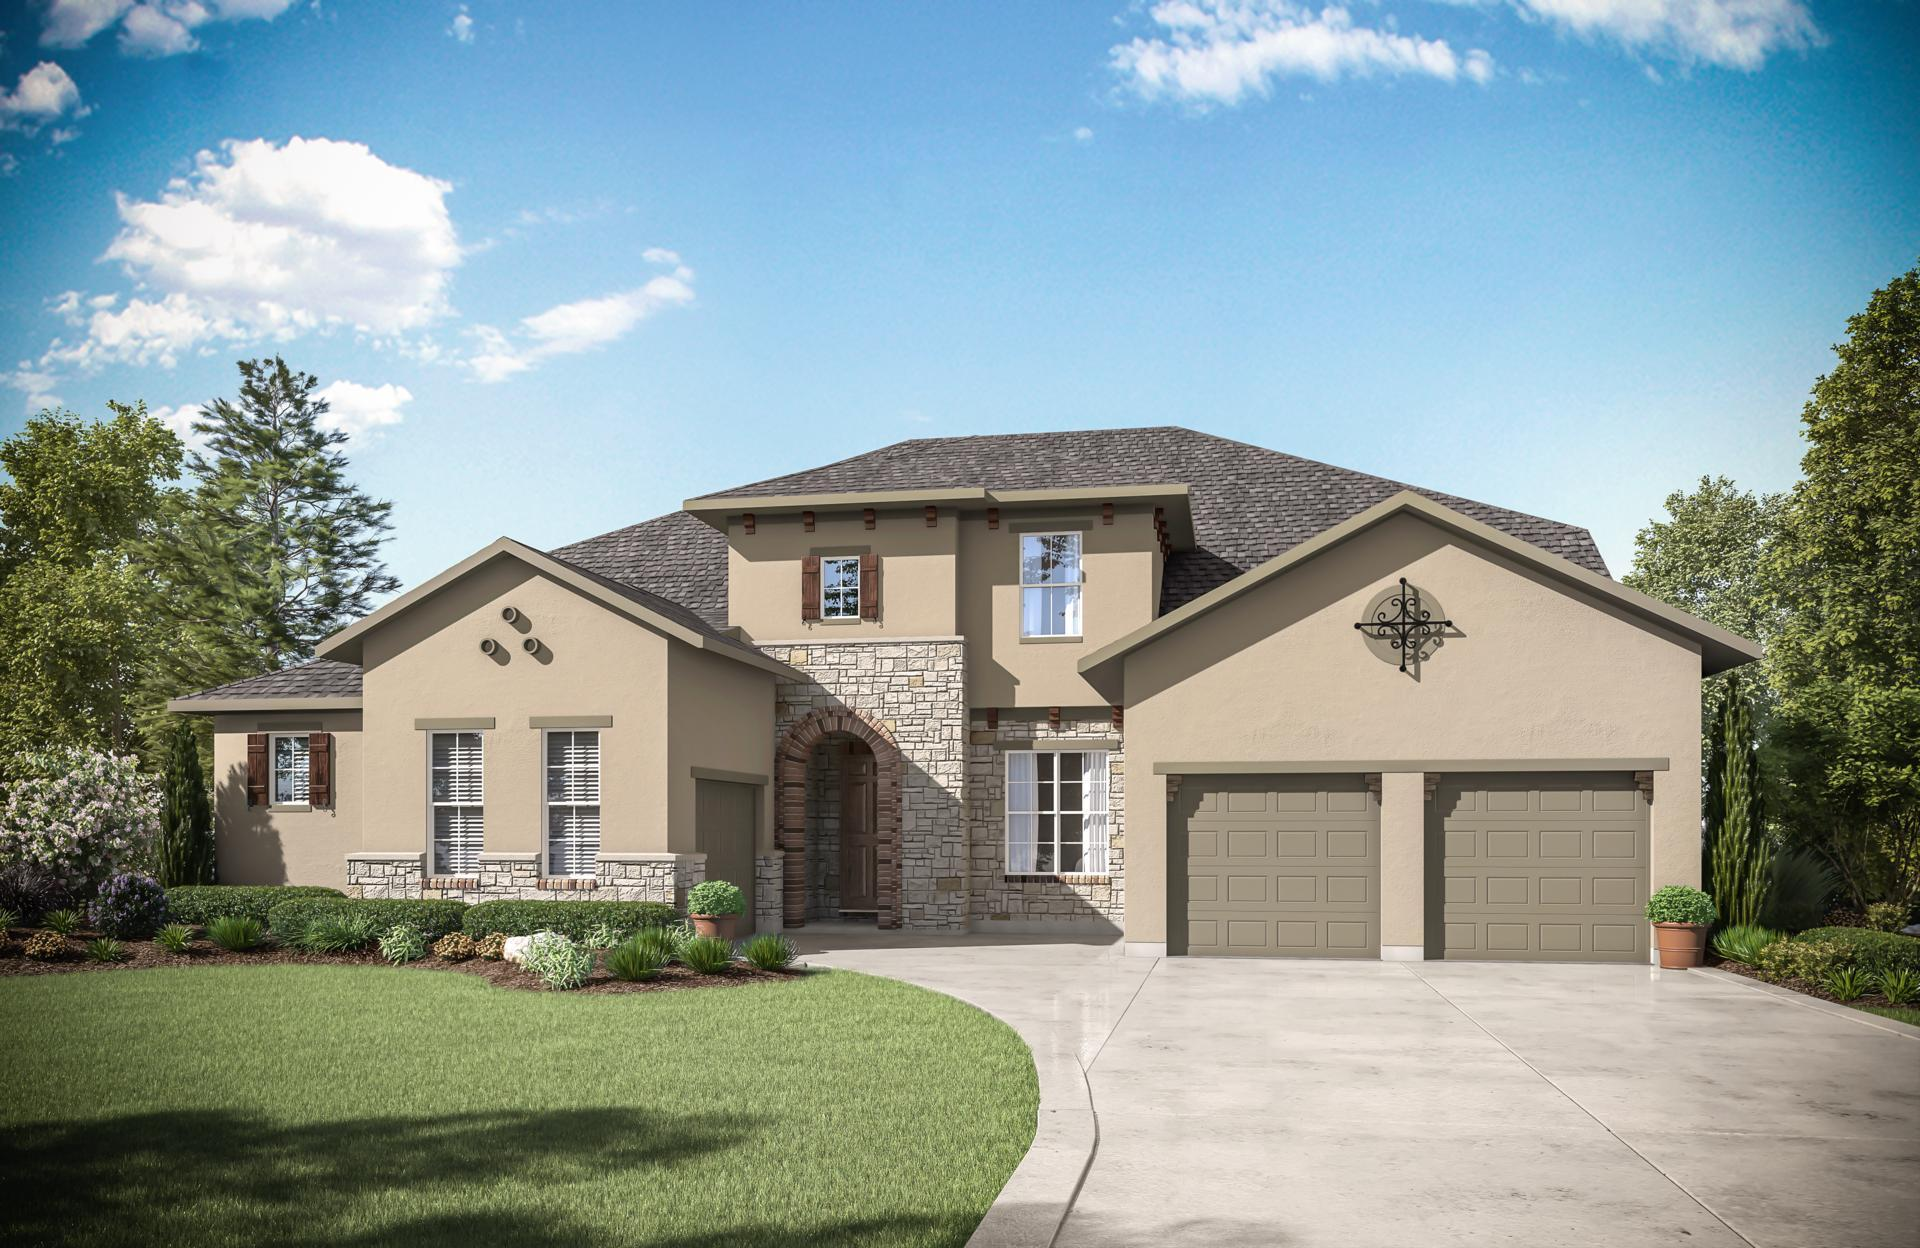 Single Family for Sale at Royal Brook At Kingwood - Grantley 3306 Lockridge Harbor Lane Porter, Texas 77365 United States